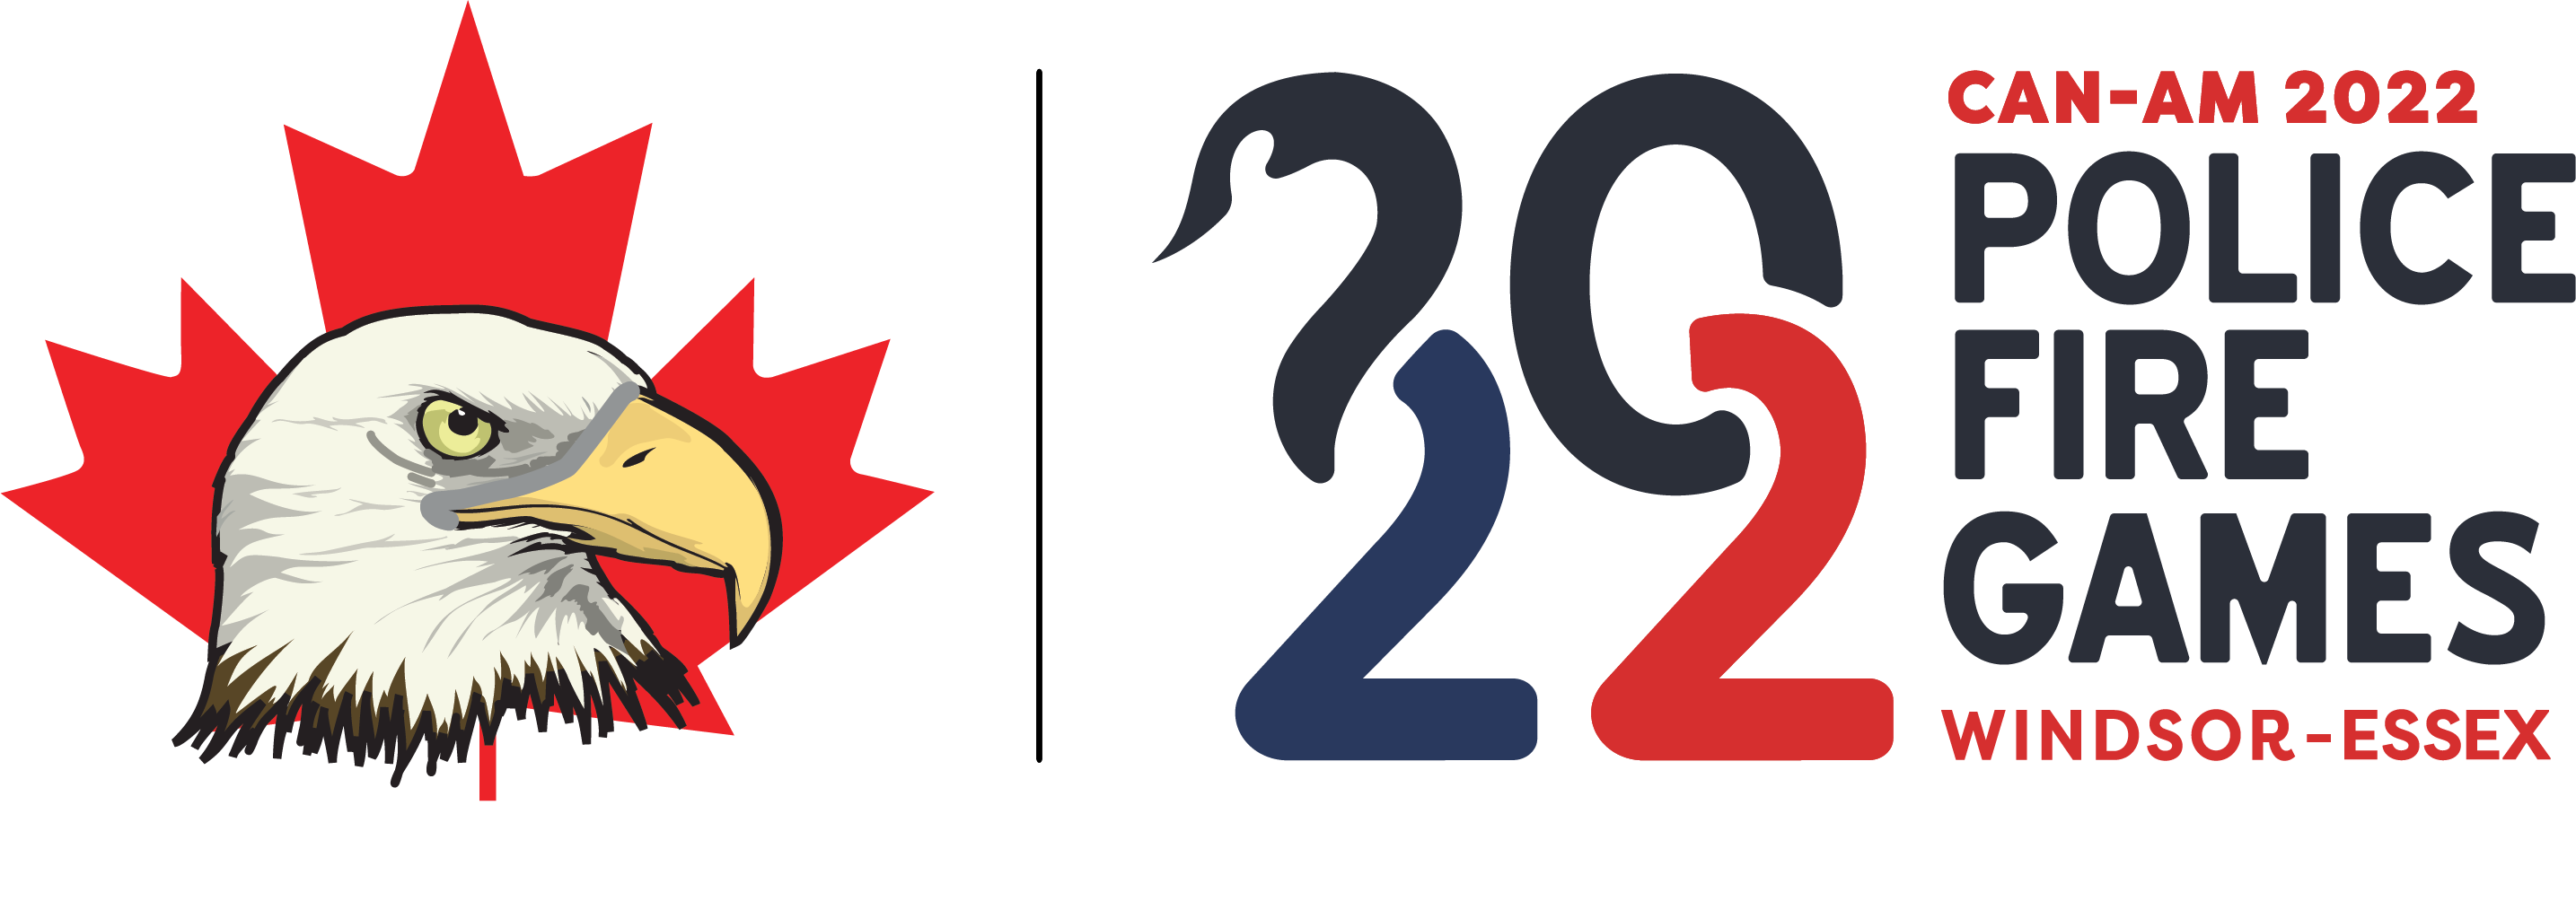 Police Fire Games 2022 logo